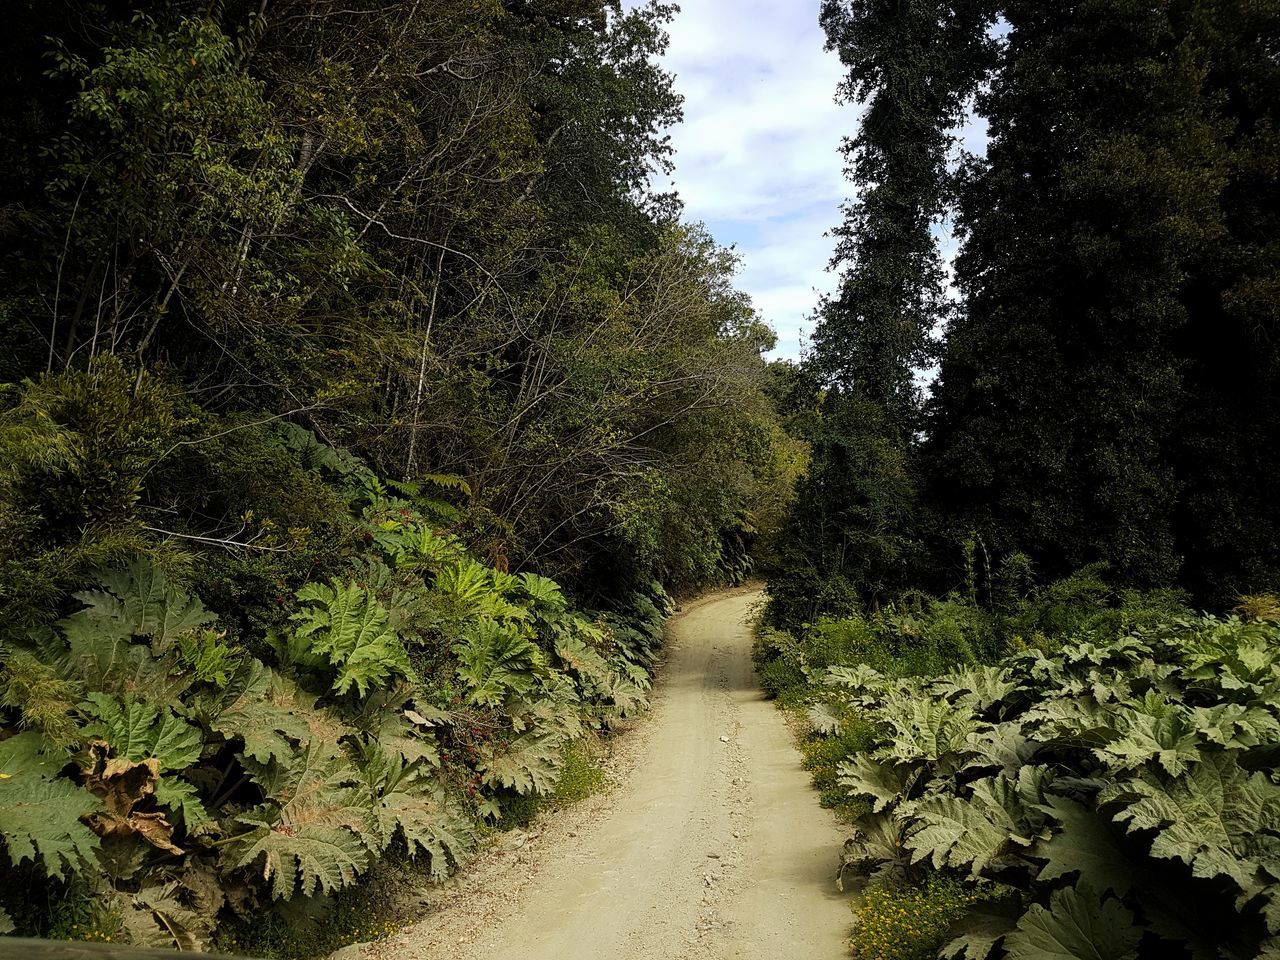 Tree Growth Nature Green Color Beauty In Nature Tranquility Sky No People Day Outdoors Scenics Low Angle View Road Freshness Nalca Earth Landscape Lifestyles Inspirations Exploring Beauty In Nature Light And Shadow Simplicity Traveling Offroad